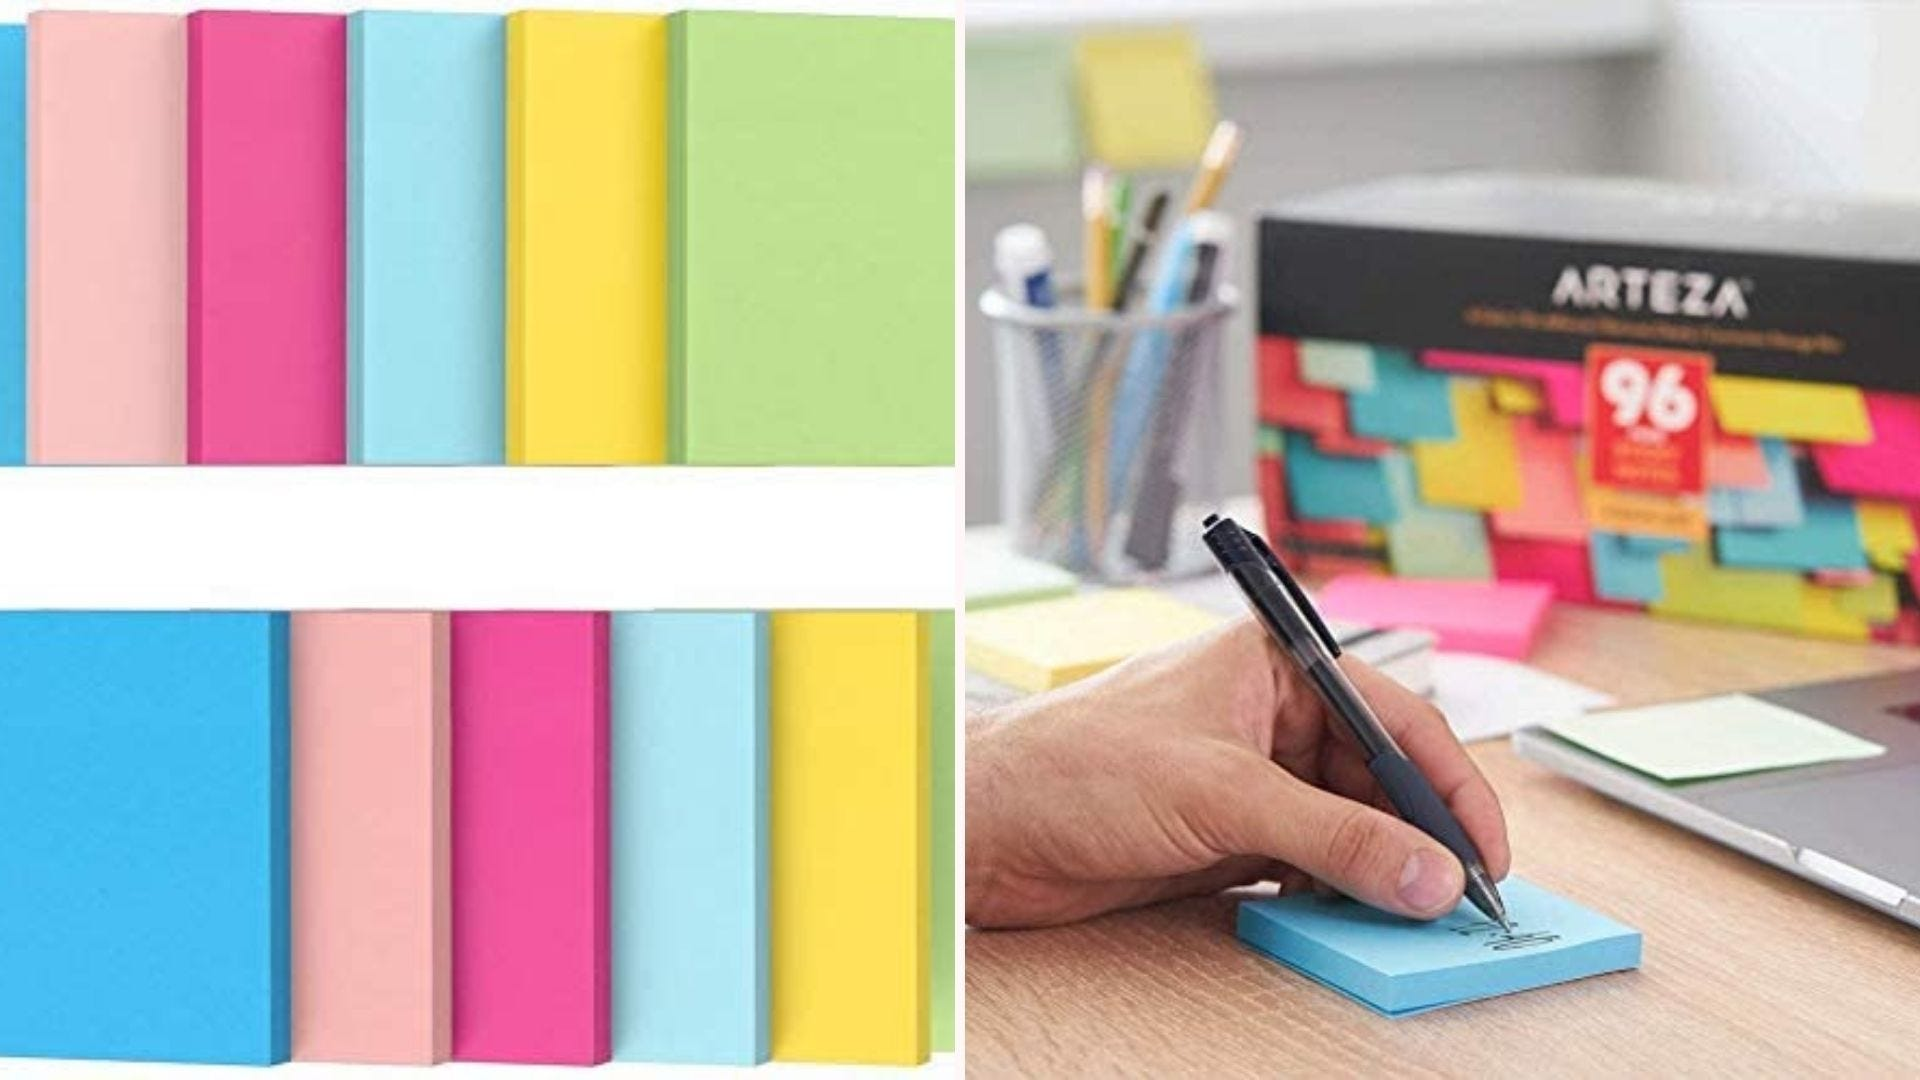 On the left, two rows of multicolor sticky note pads. On the right, an offscreen person sits at their desk while writing on a blue note pad.